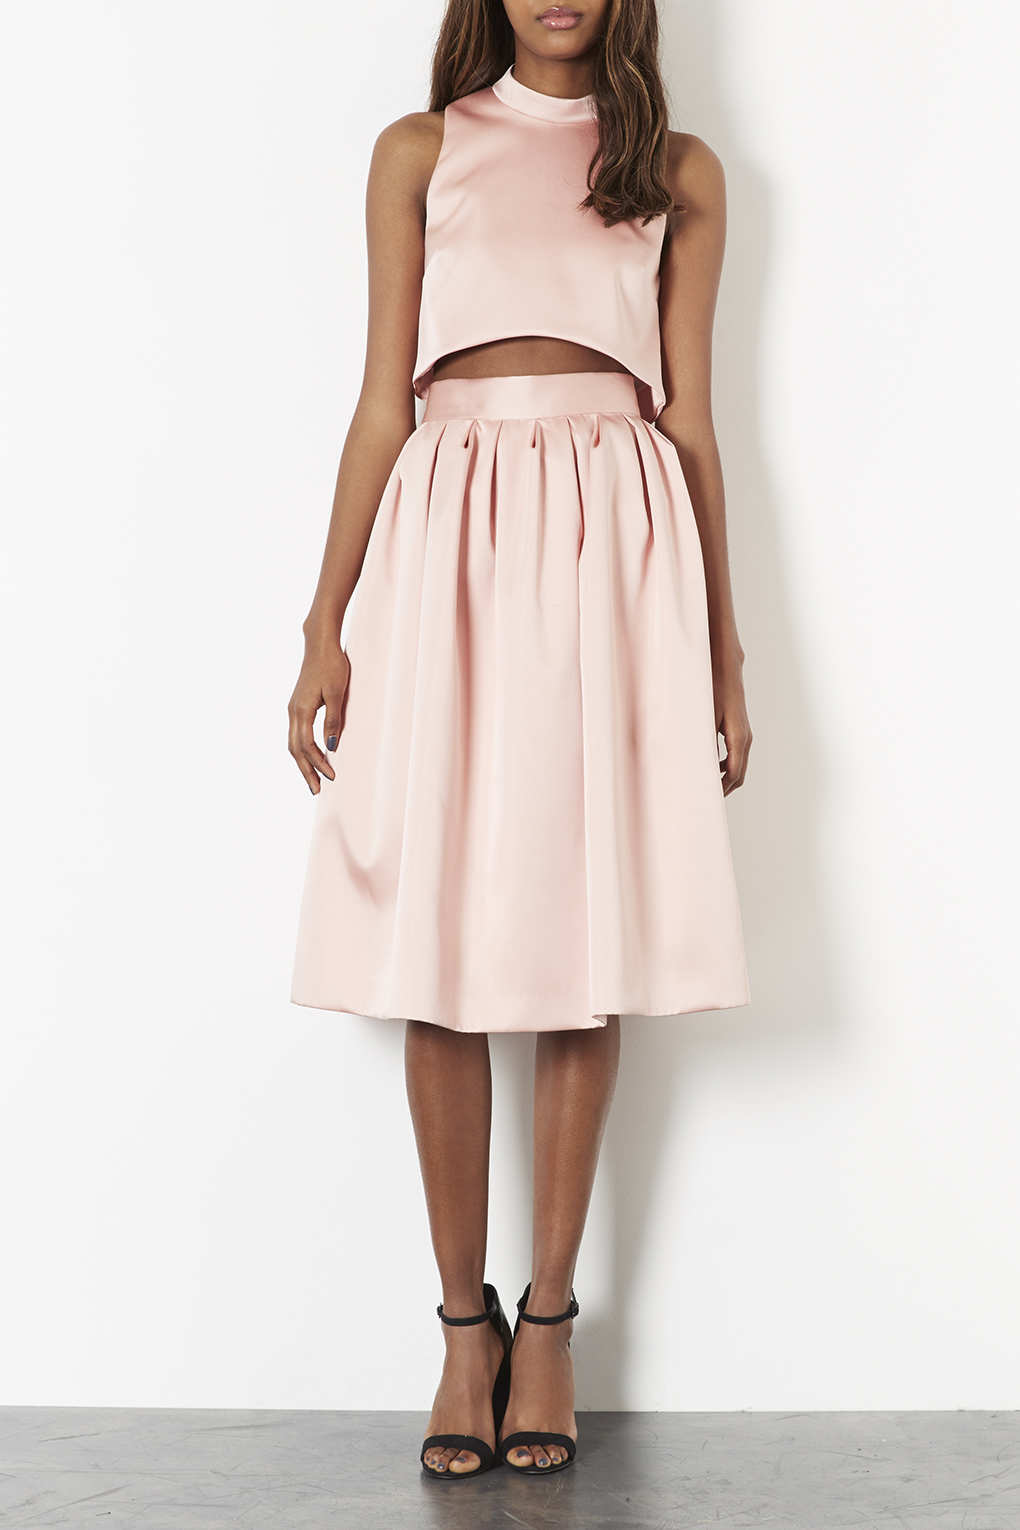 Topshop Limited Edition Duchess Satin Midi Skirt in Natural | Lyst